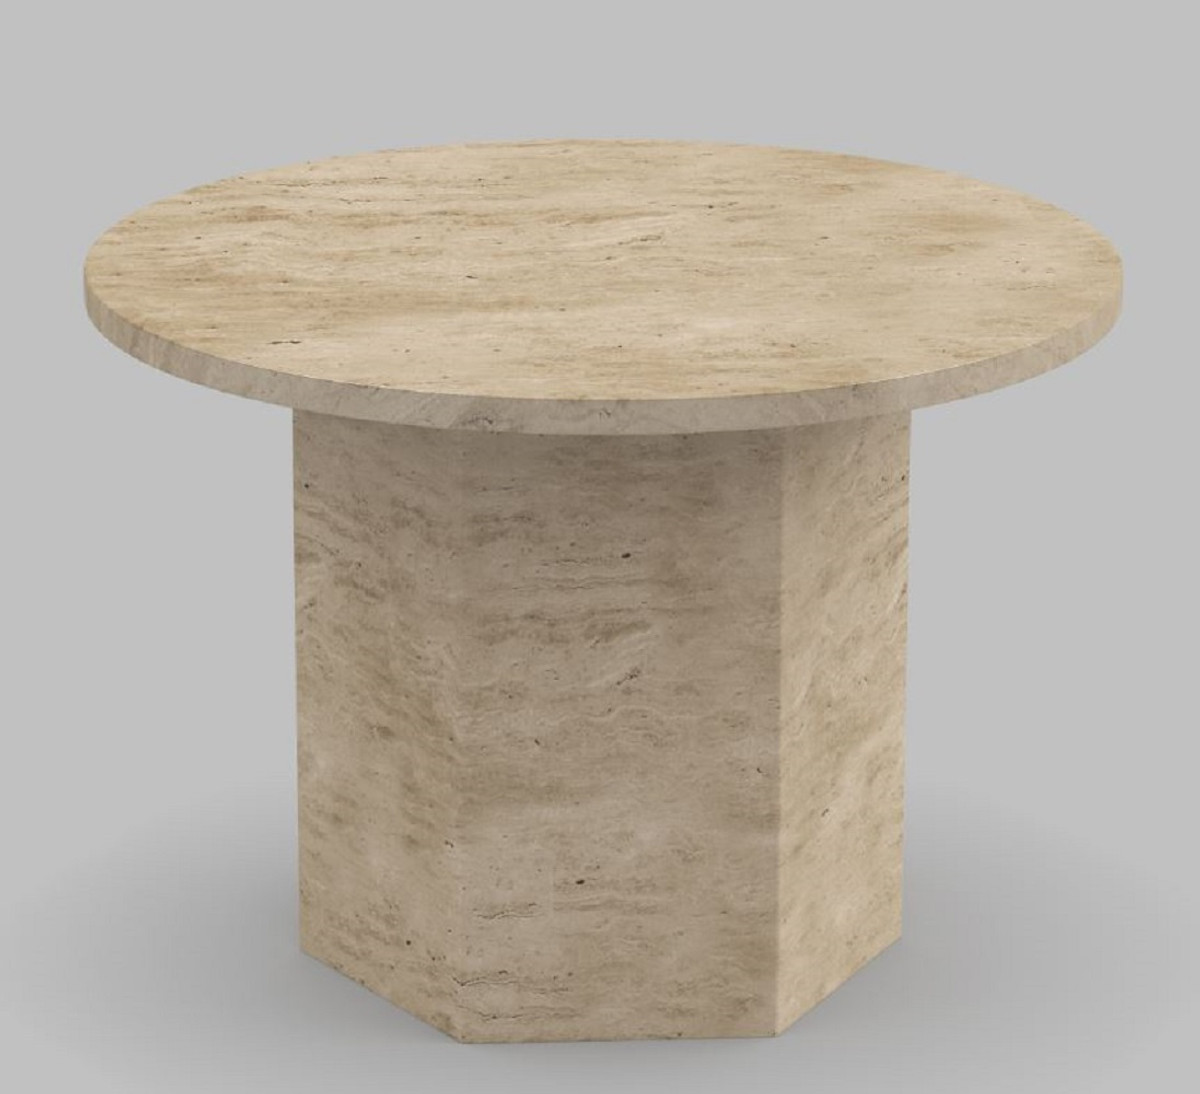 casa padrino luxury coffee table beige o 60 x h 40 cm modern round natural stone living room table luxury living room furniture